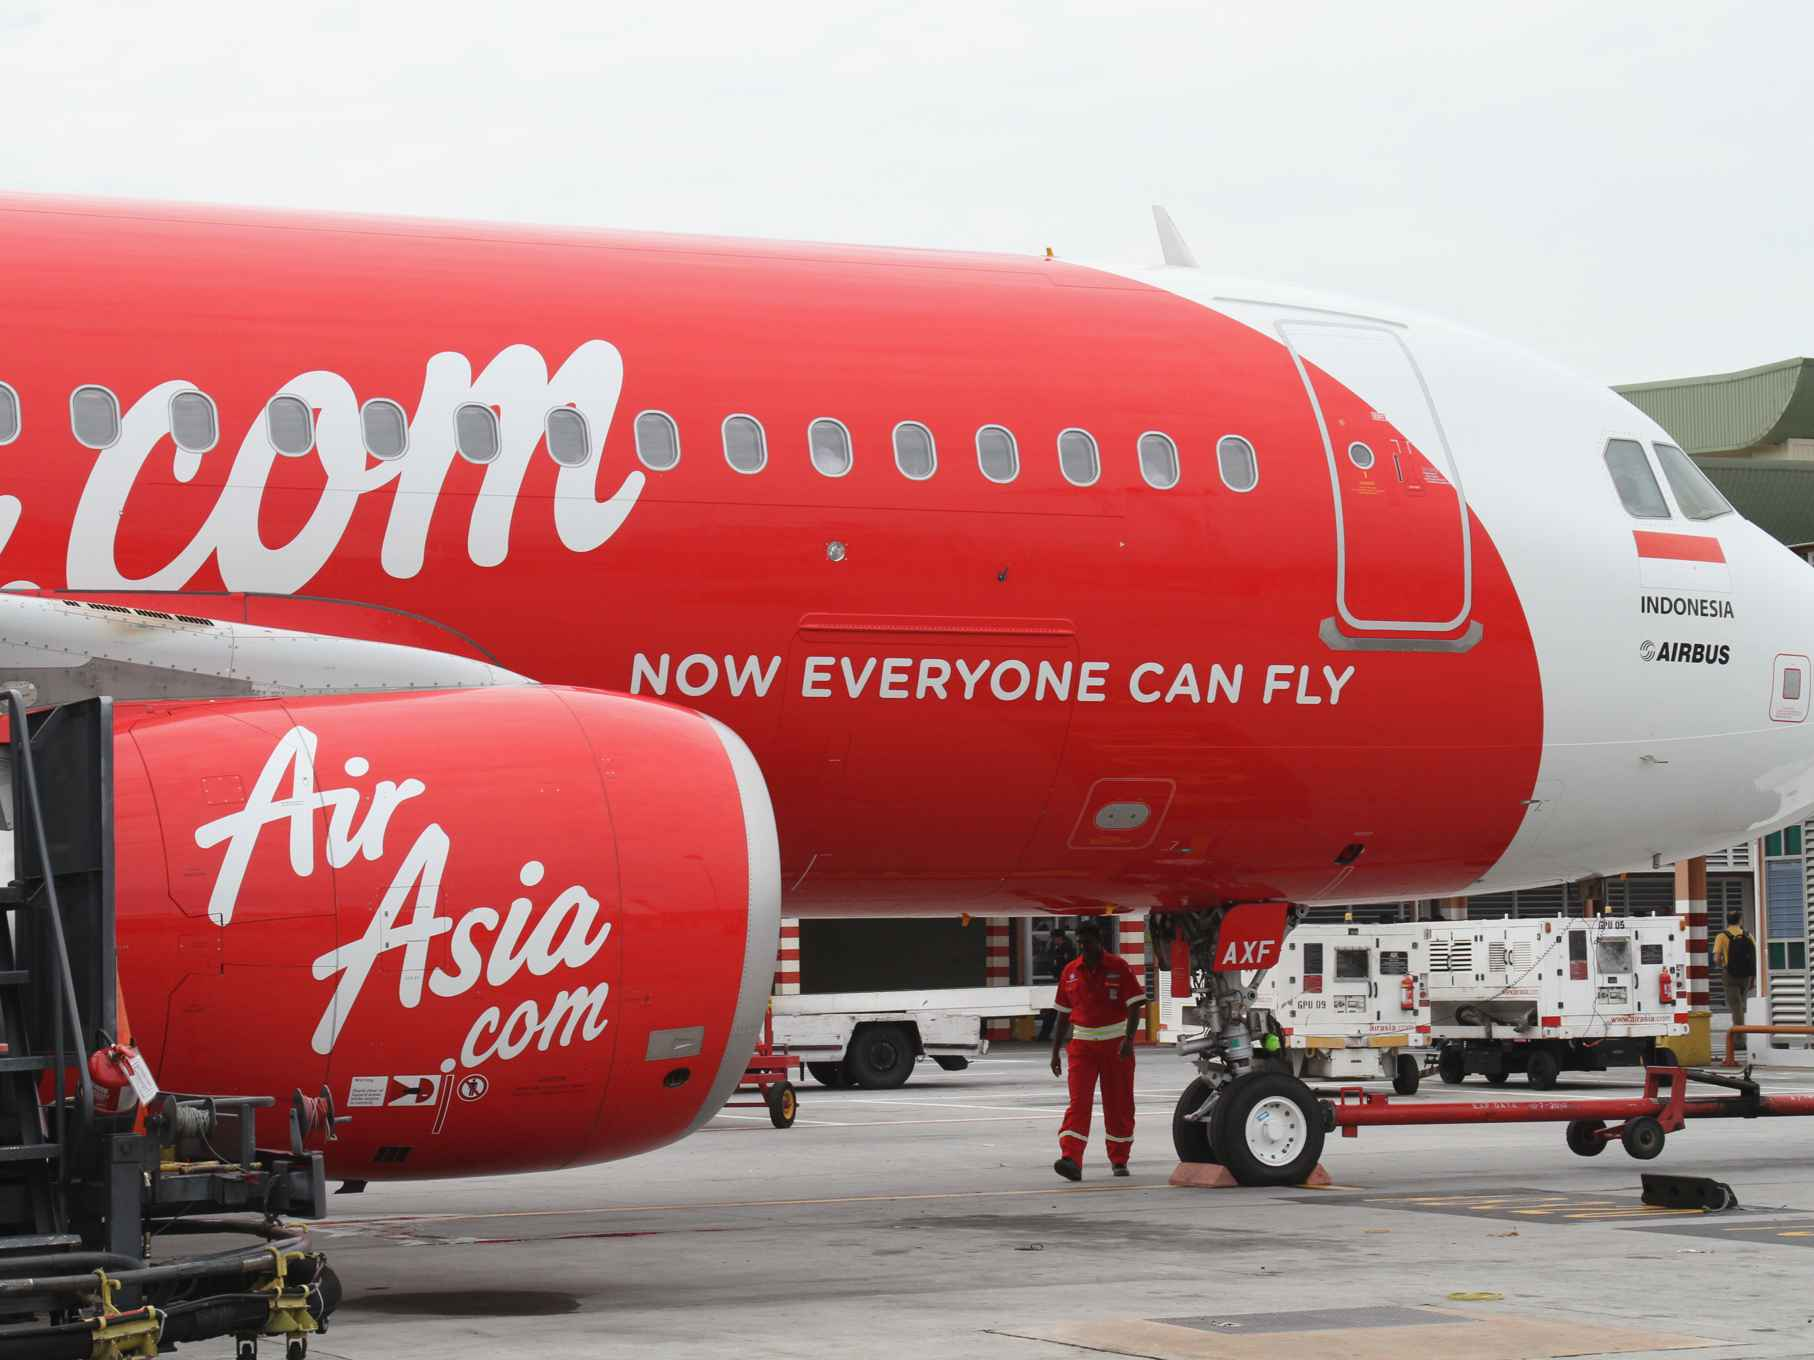 AirAsia, Southeast Asia's low-cost airline, is considering an ICO